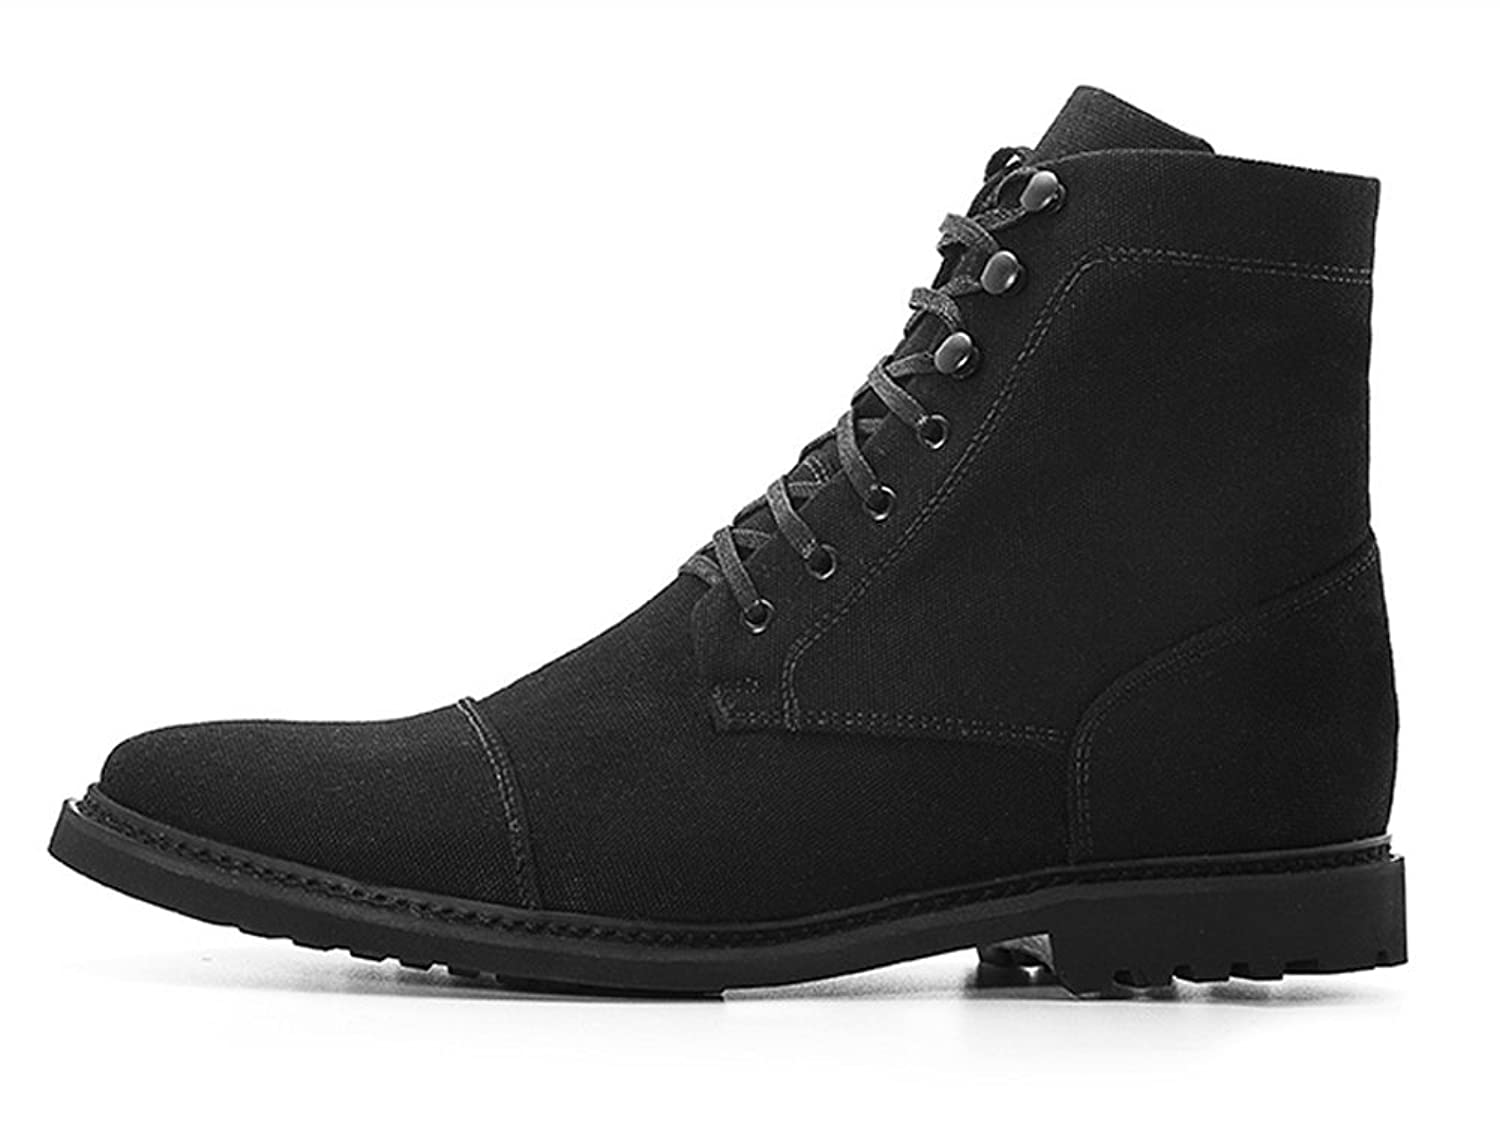 Ahimsa Men's Vegan Work Boot